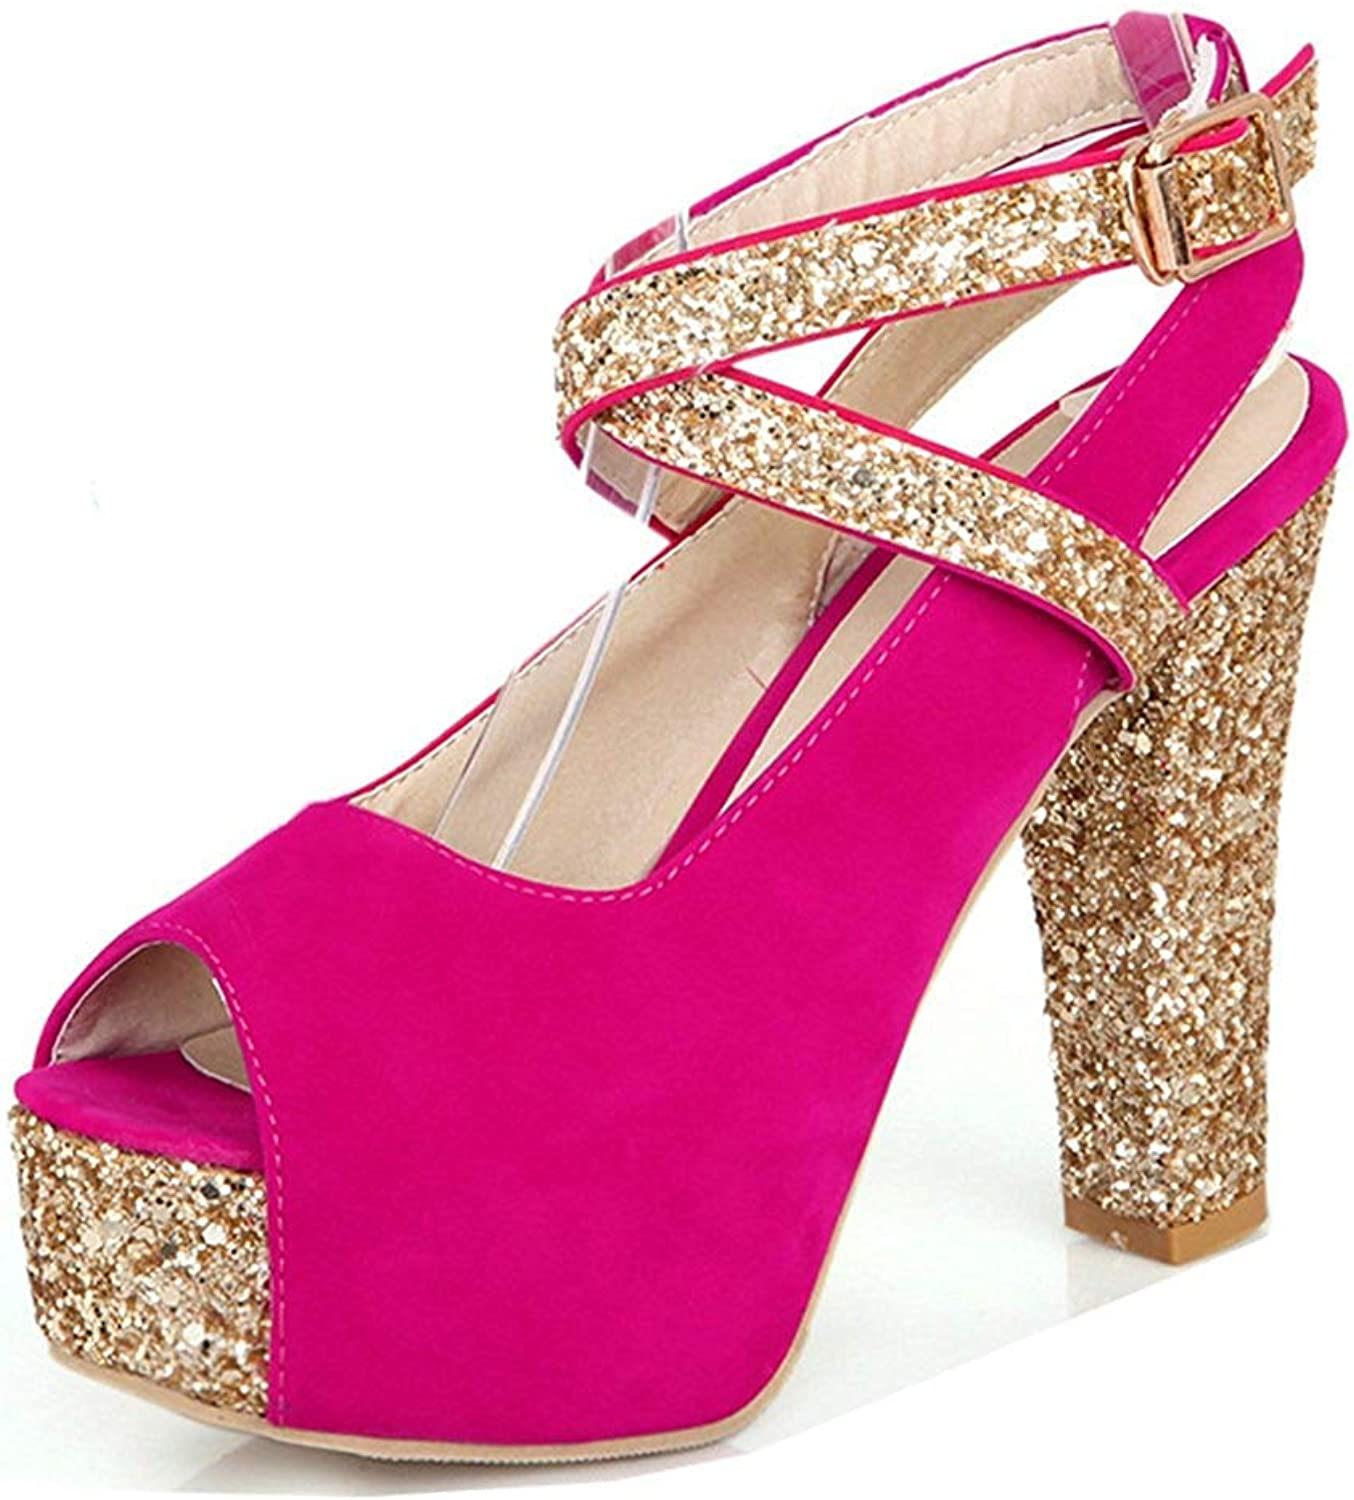 Unm Women's Platform Sandals with Ankle Strap - Peep Toe Buckled Chunky - High Heel Bling Sequin